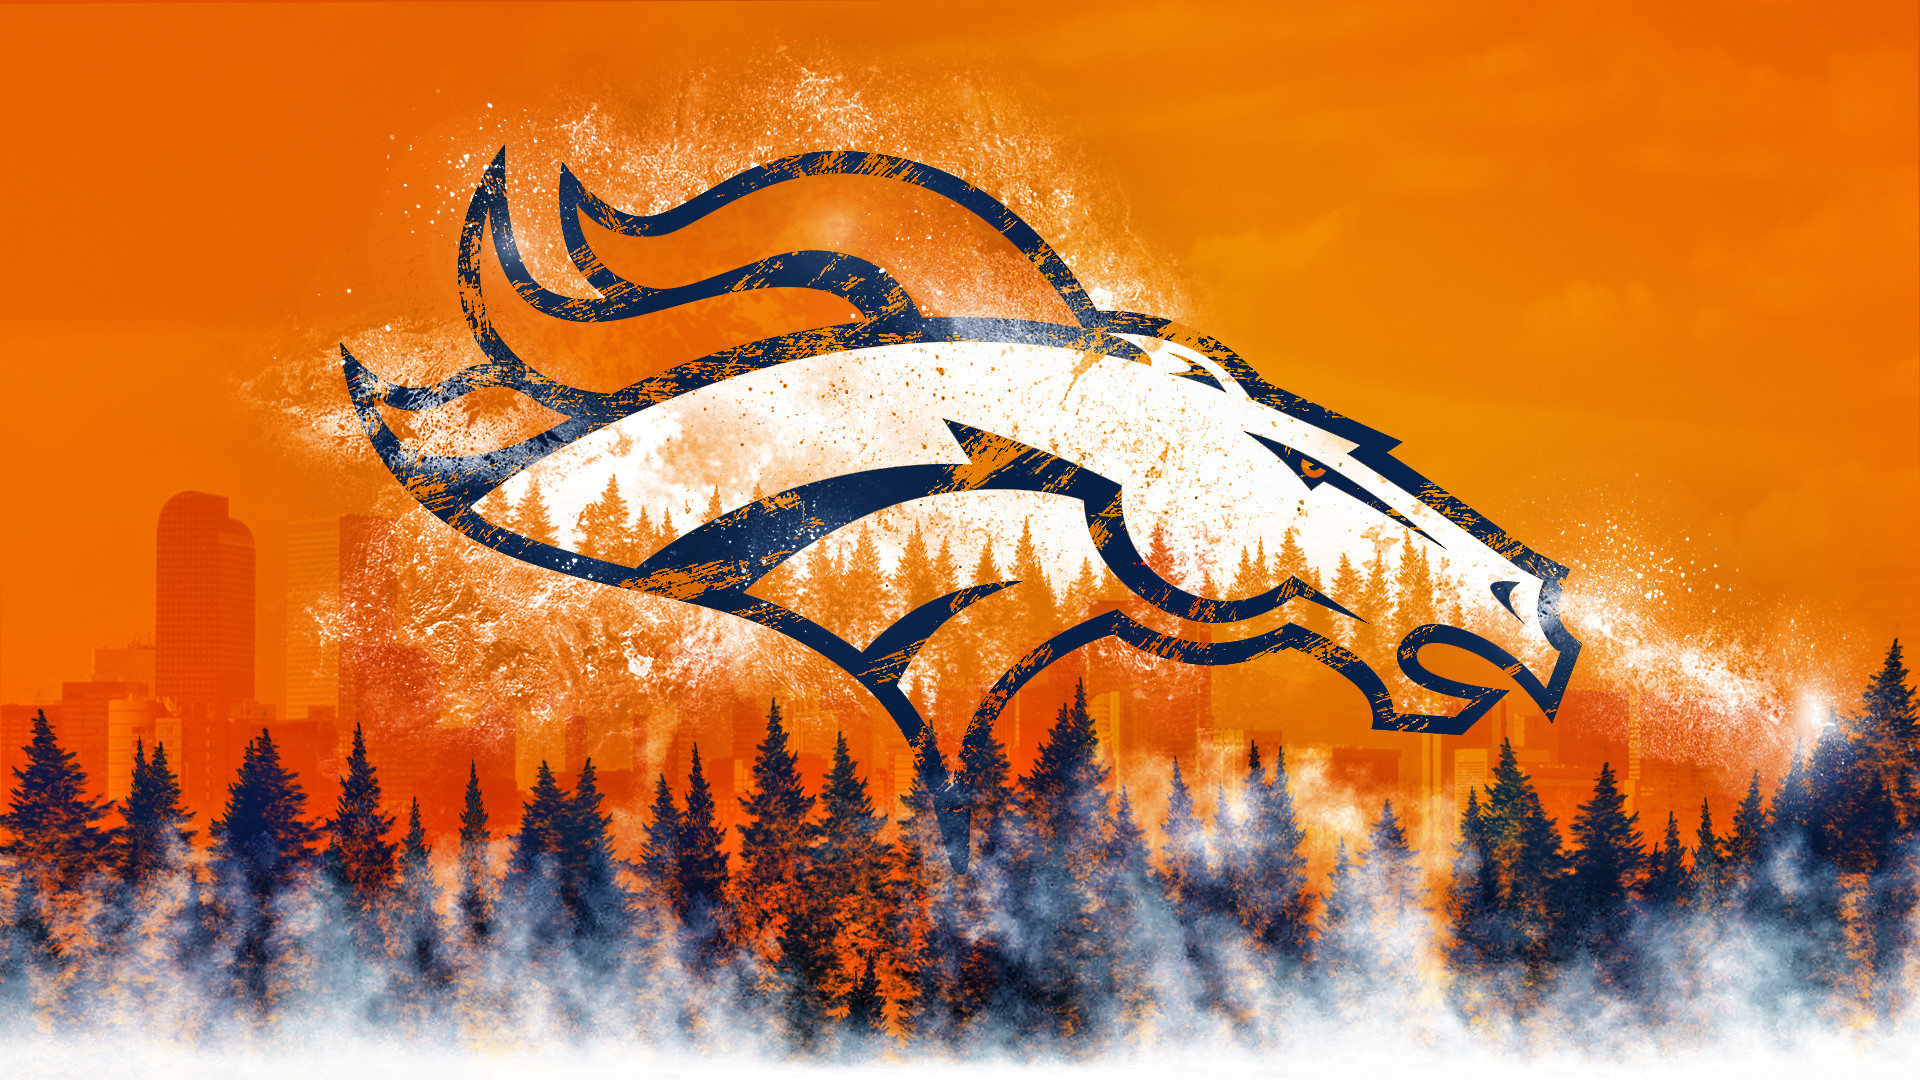 denver broncos desktop wallpaper  Denver Broncos Wallpaper Screensavers (69  images)